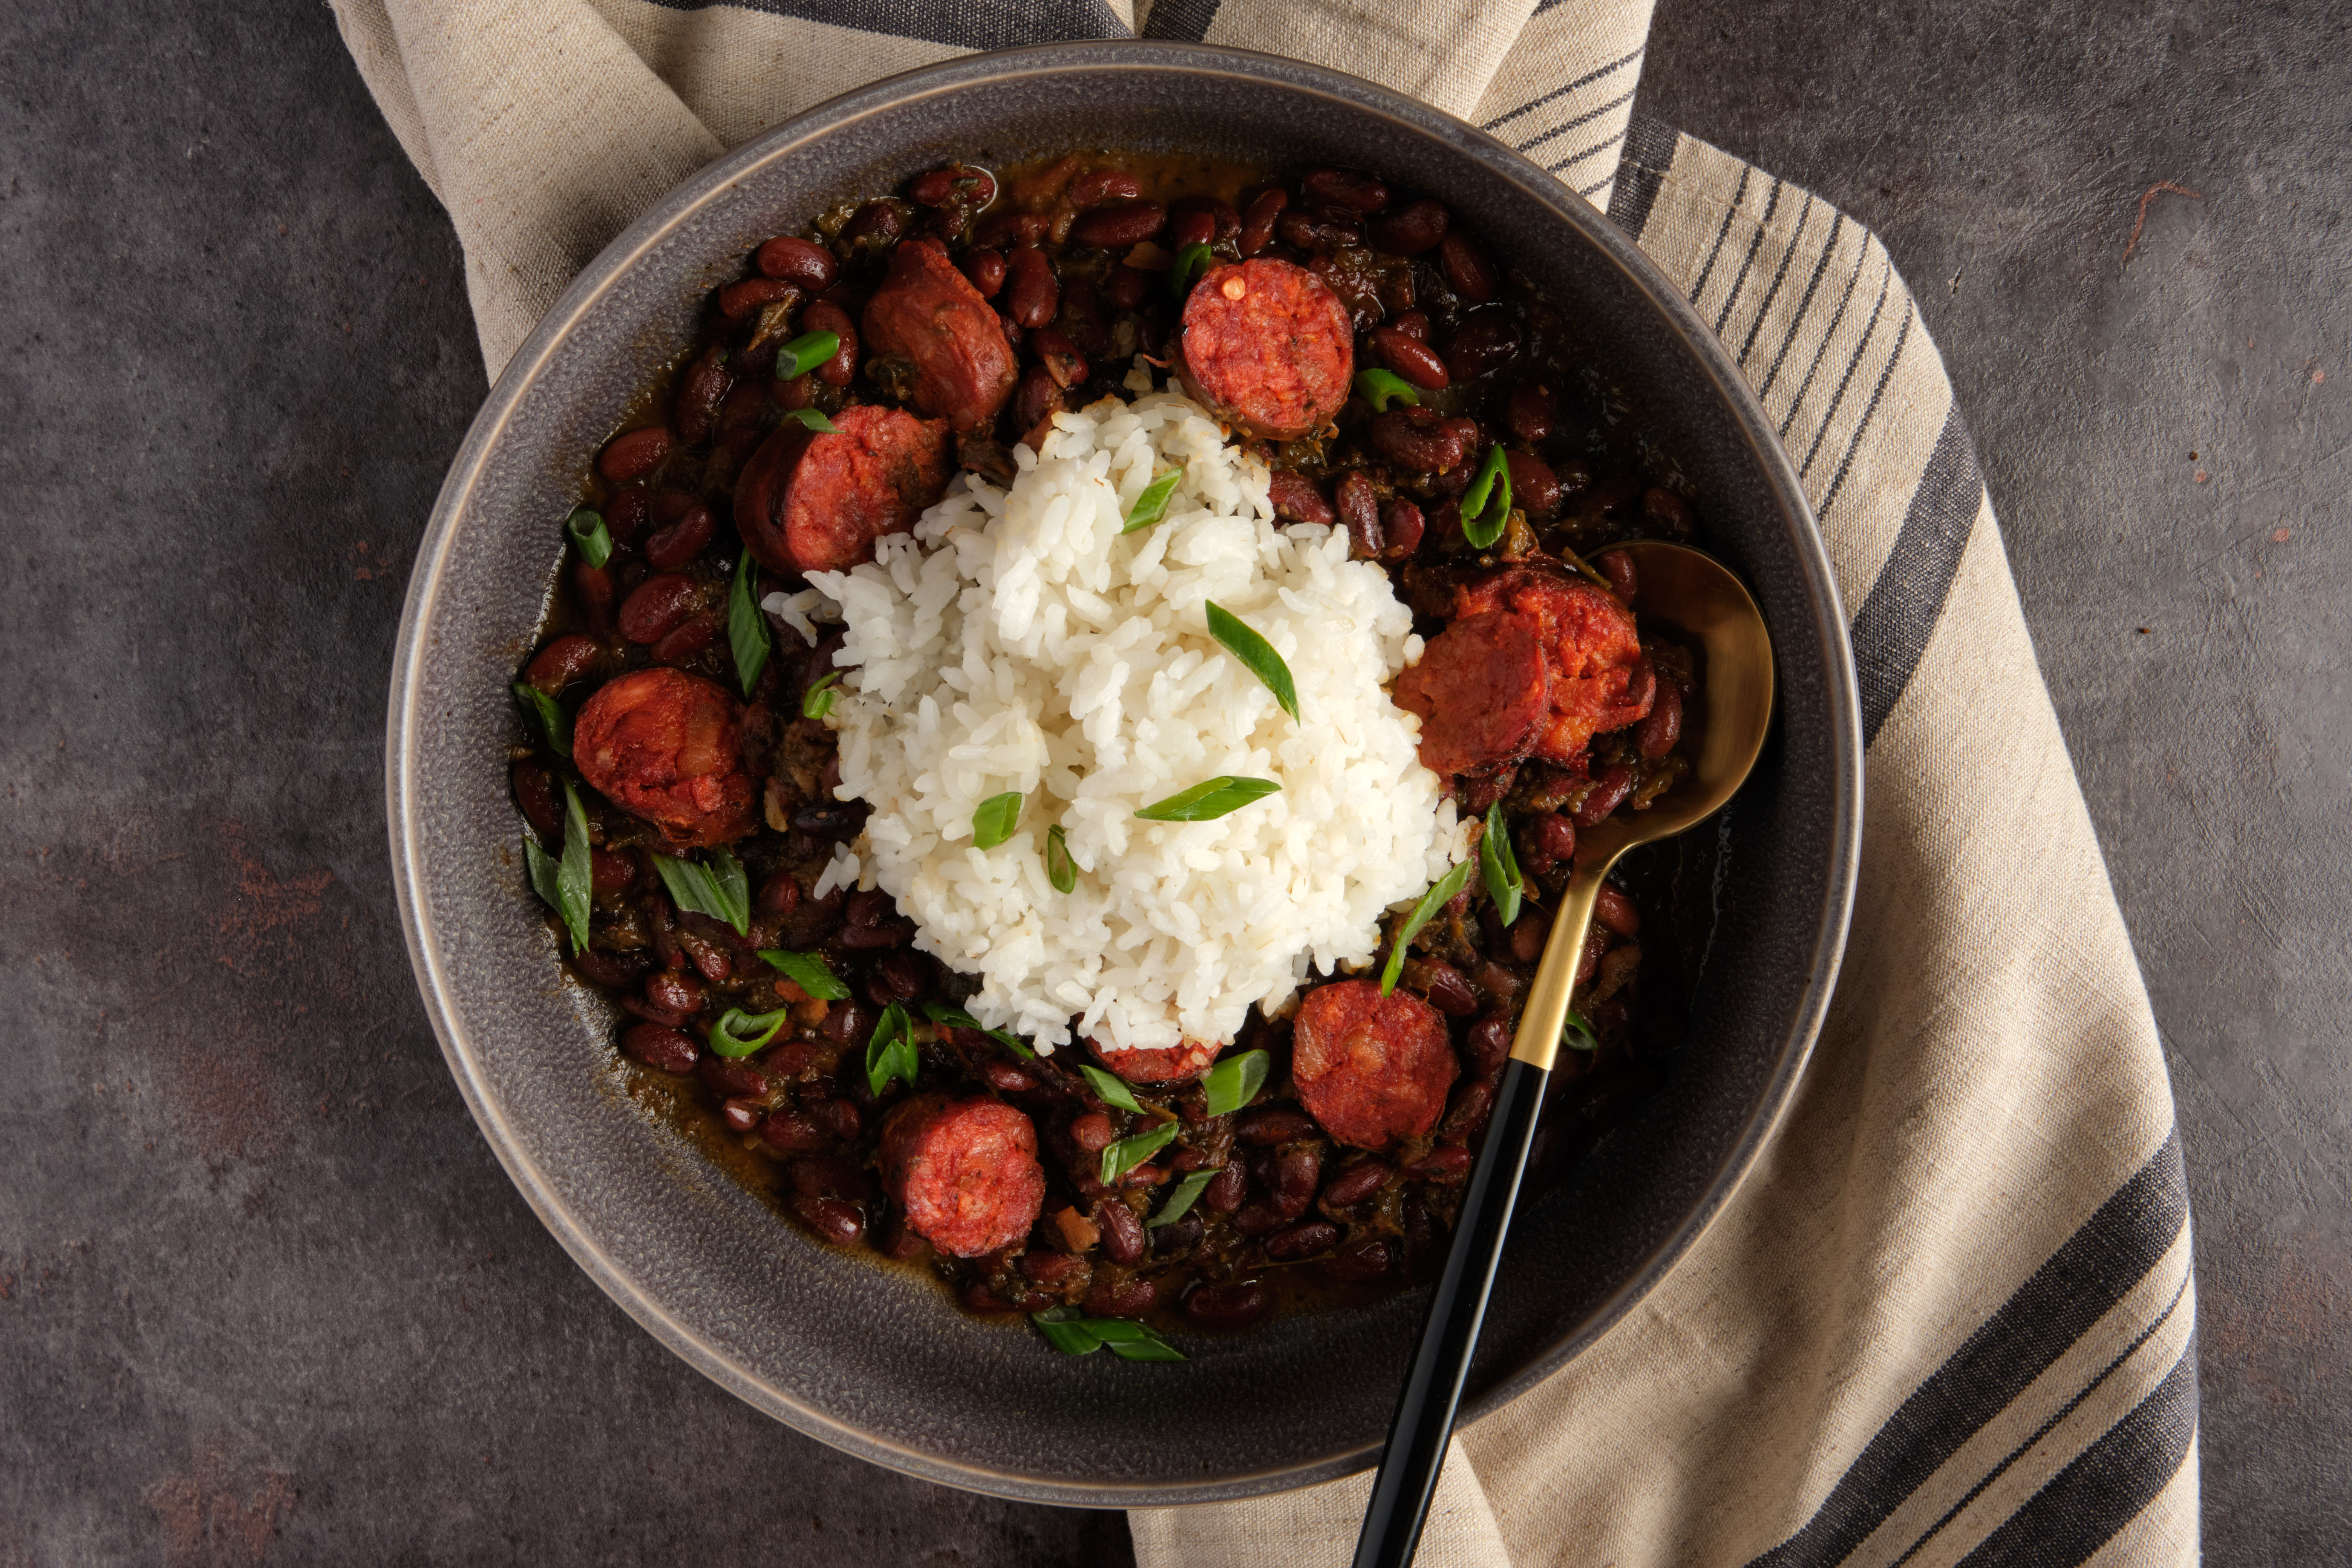 A bowl of red beans and rice sits atop a striped dish towel on a table.